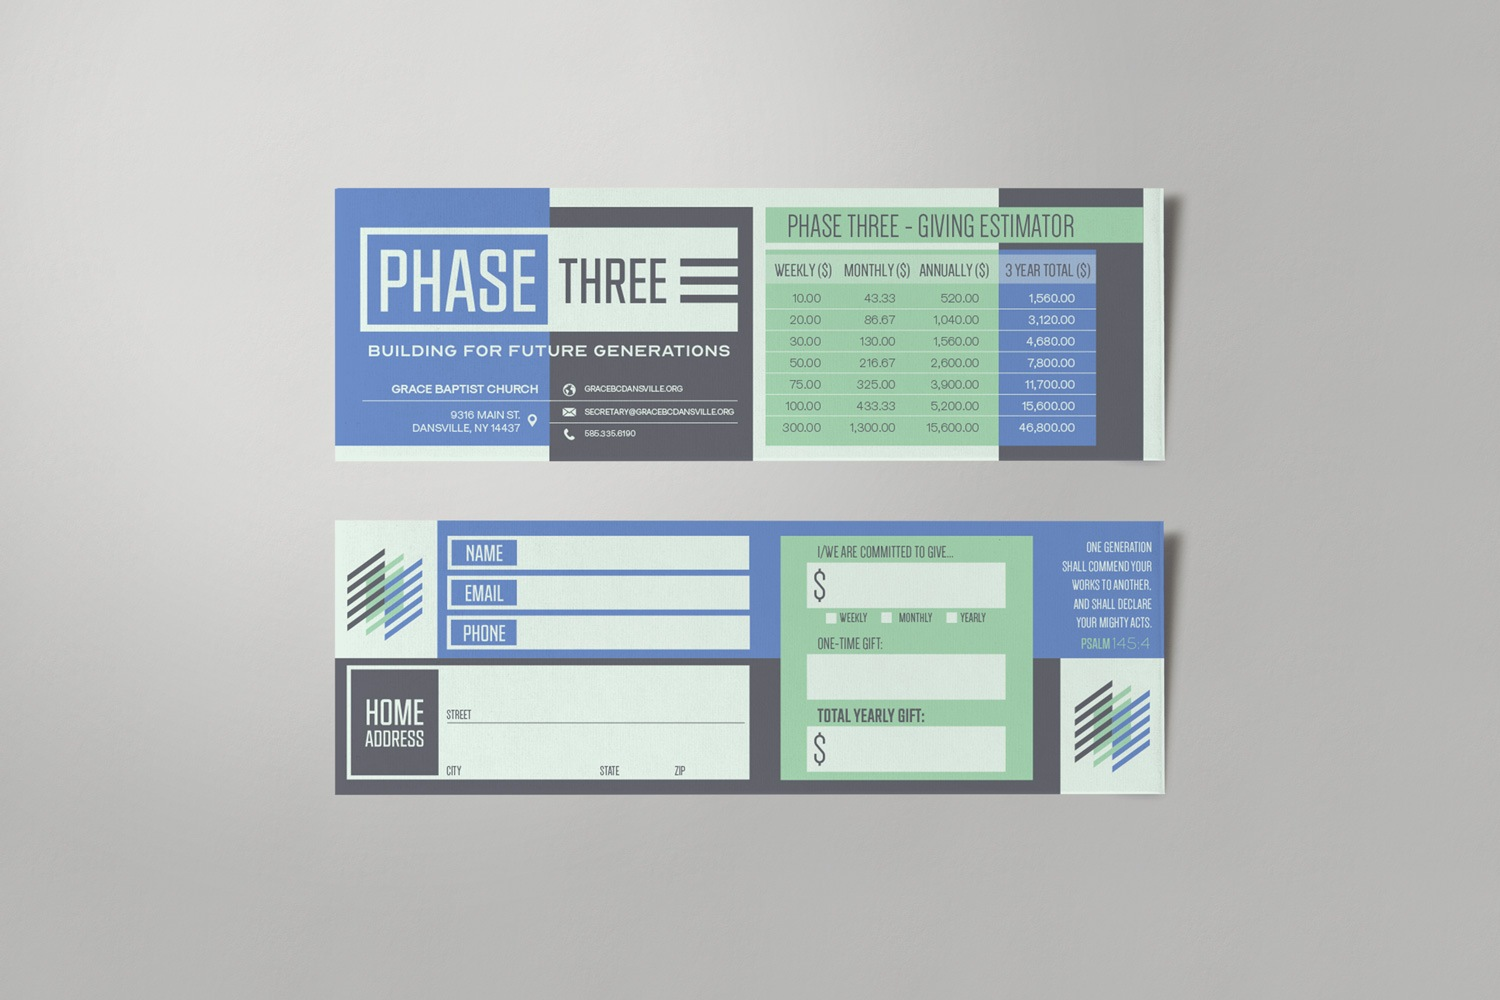 Church capital campaign theme pledge card design stewardship materials by Abstract Union